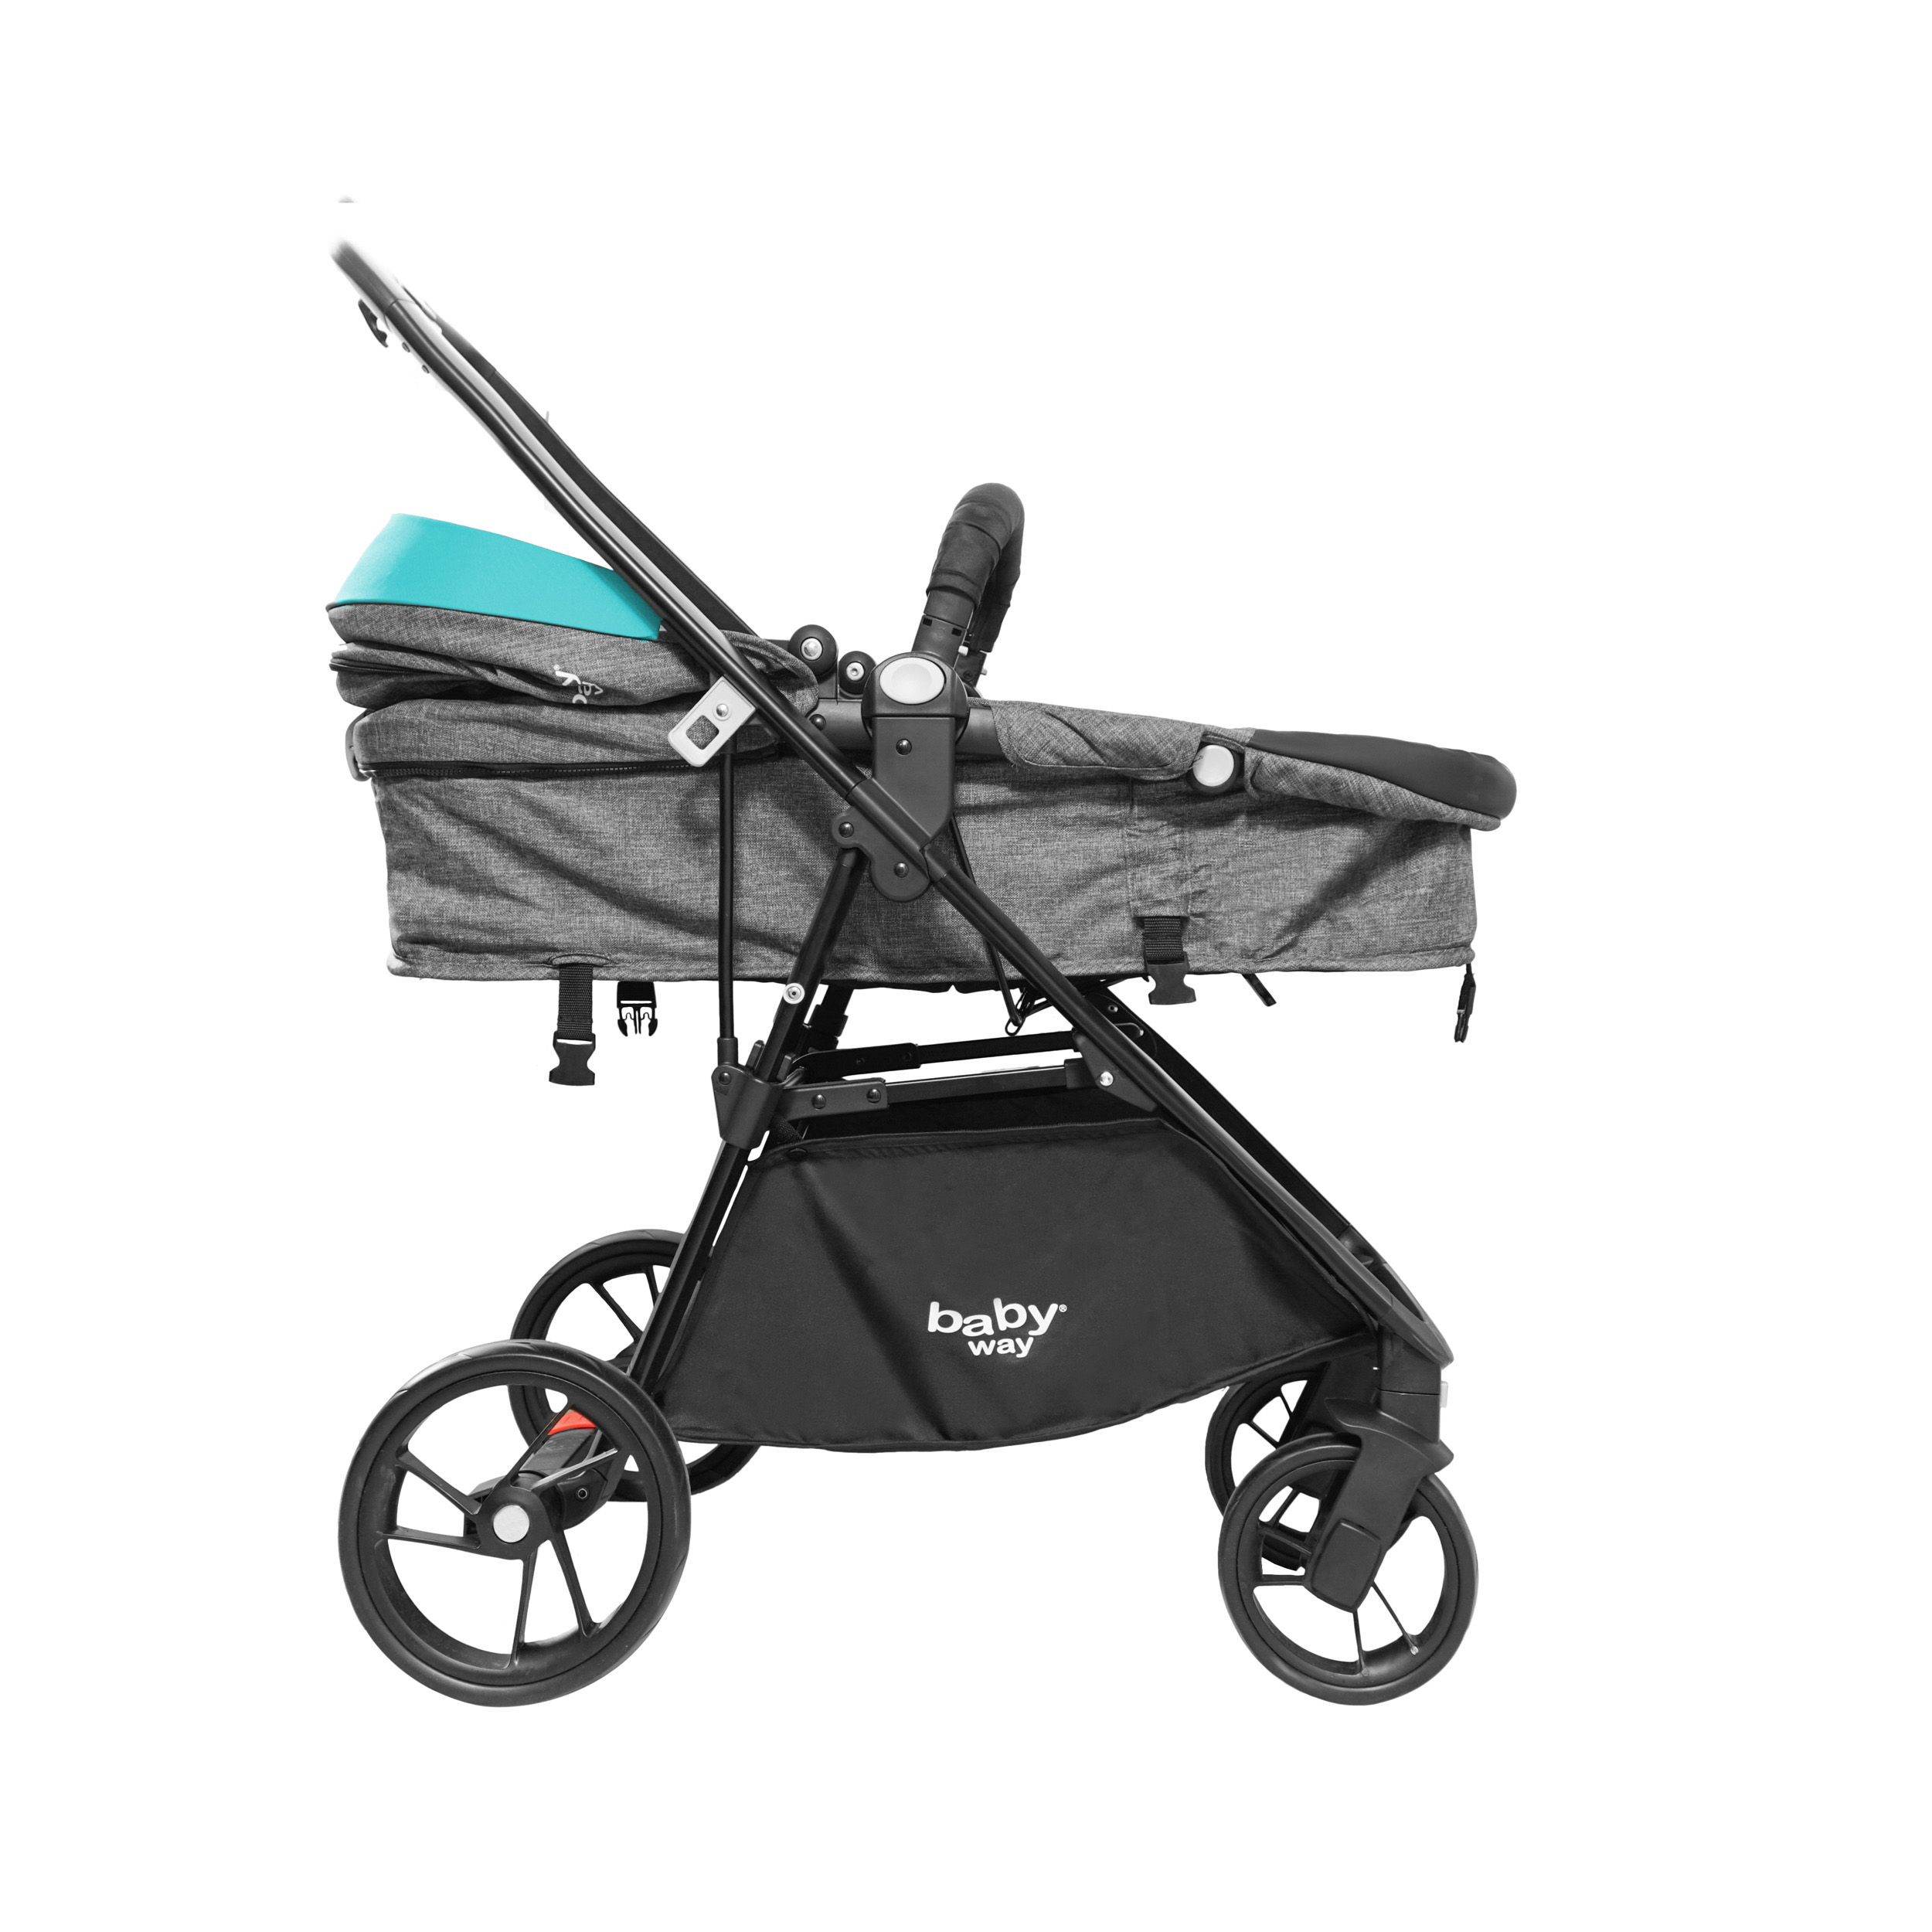 Coche Travel System Baby Way Turquesa Bw-412